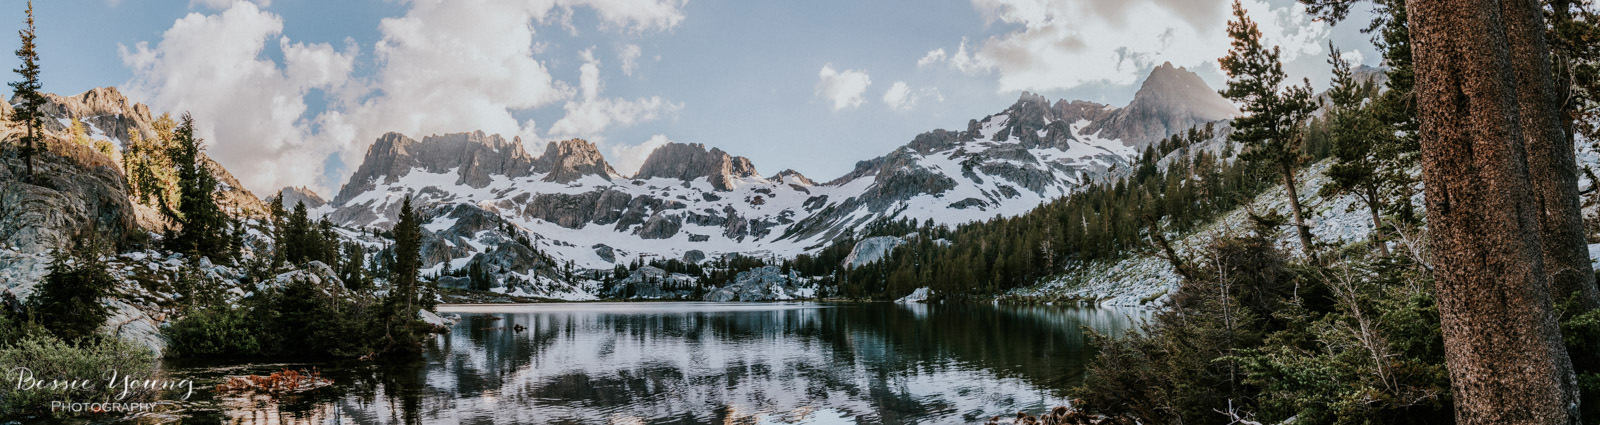 Ansel Adams Wilderness Backpacking day 1 2017 - Bessie Young Photography-22.jpg